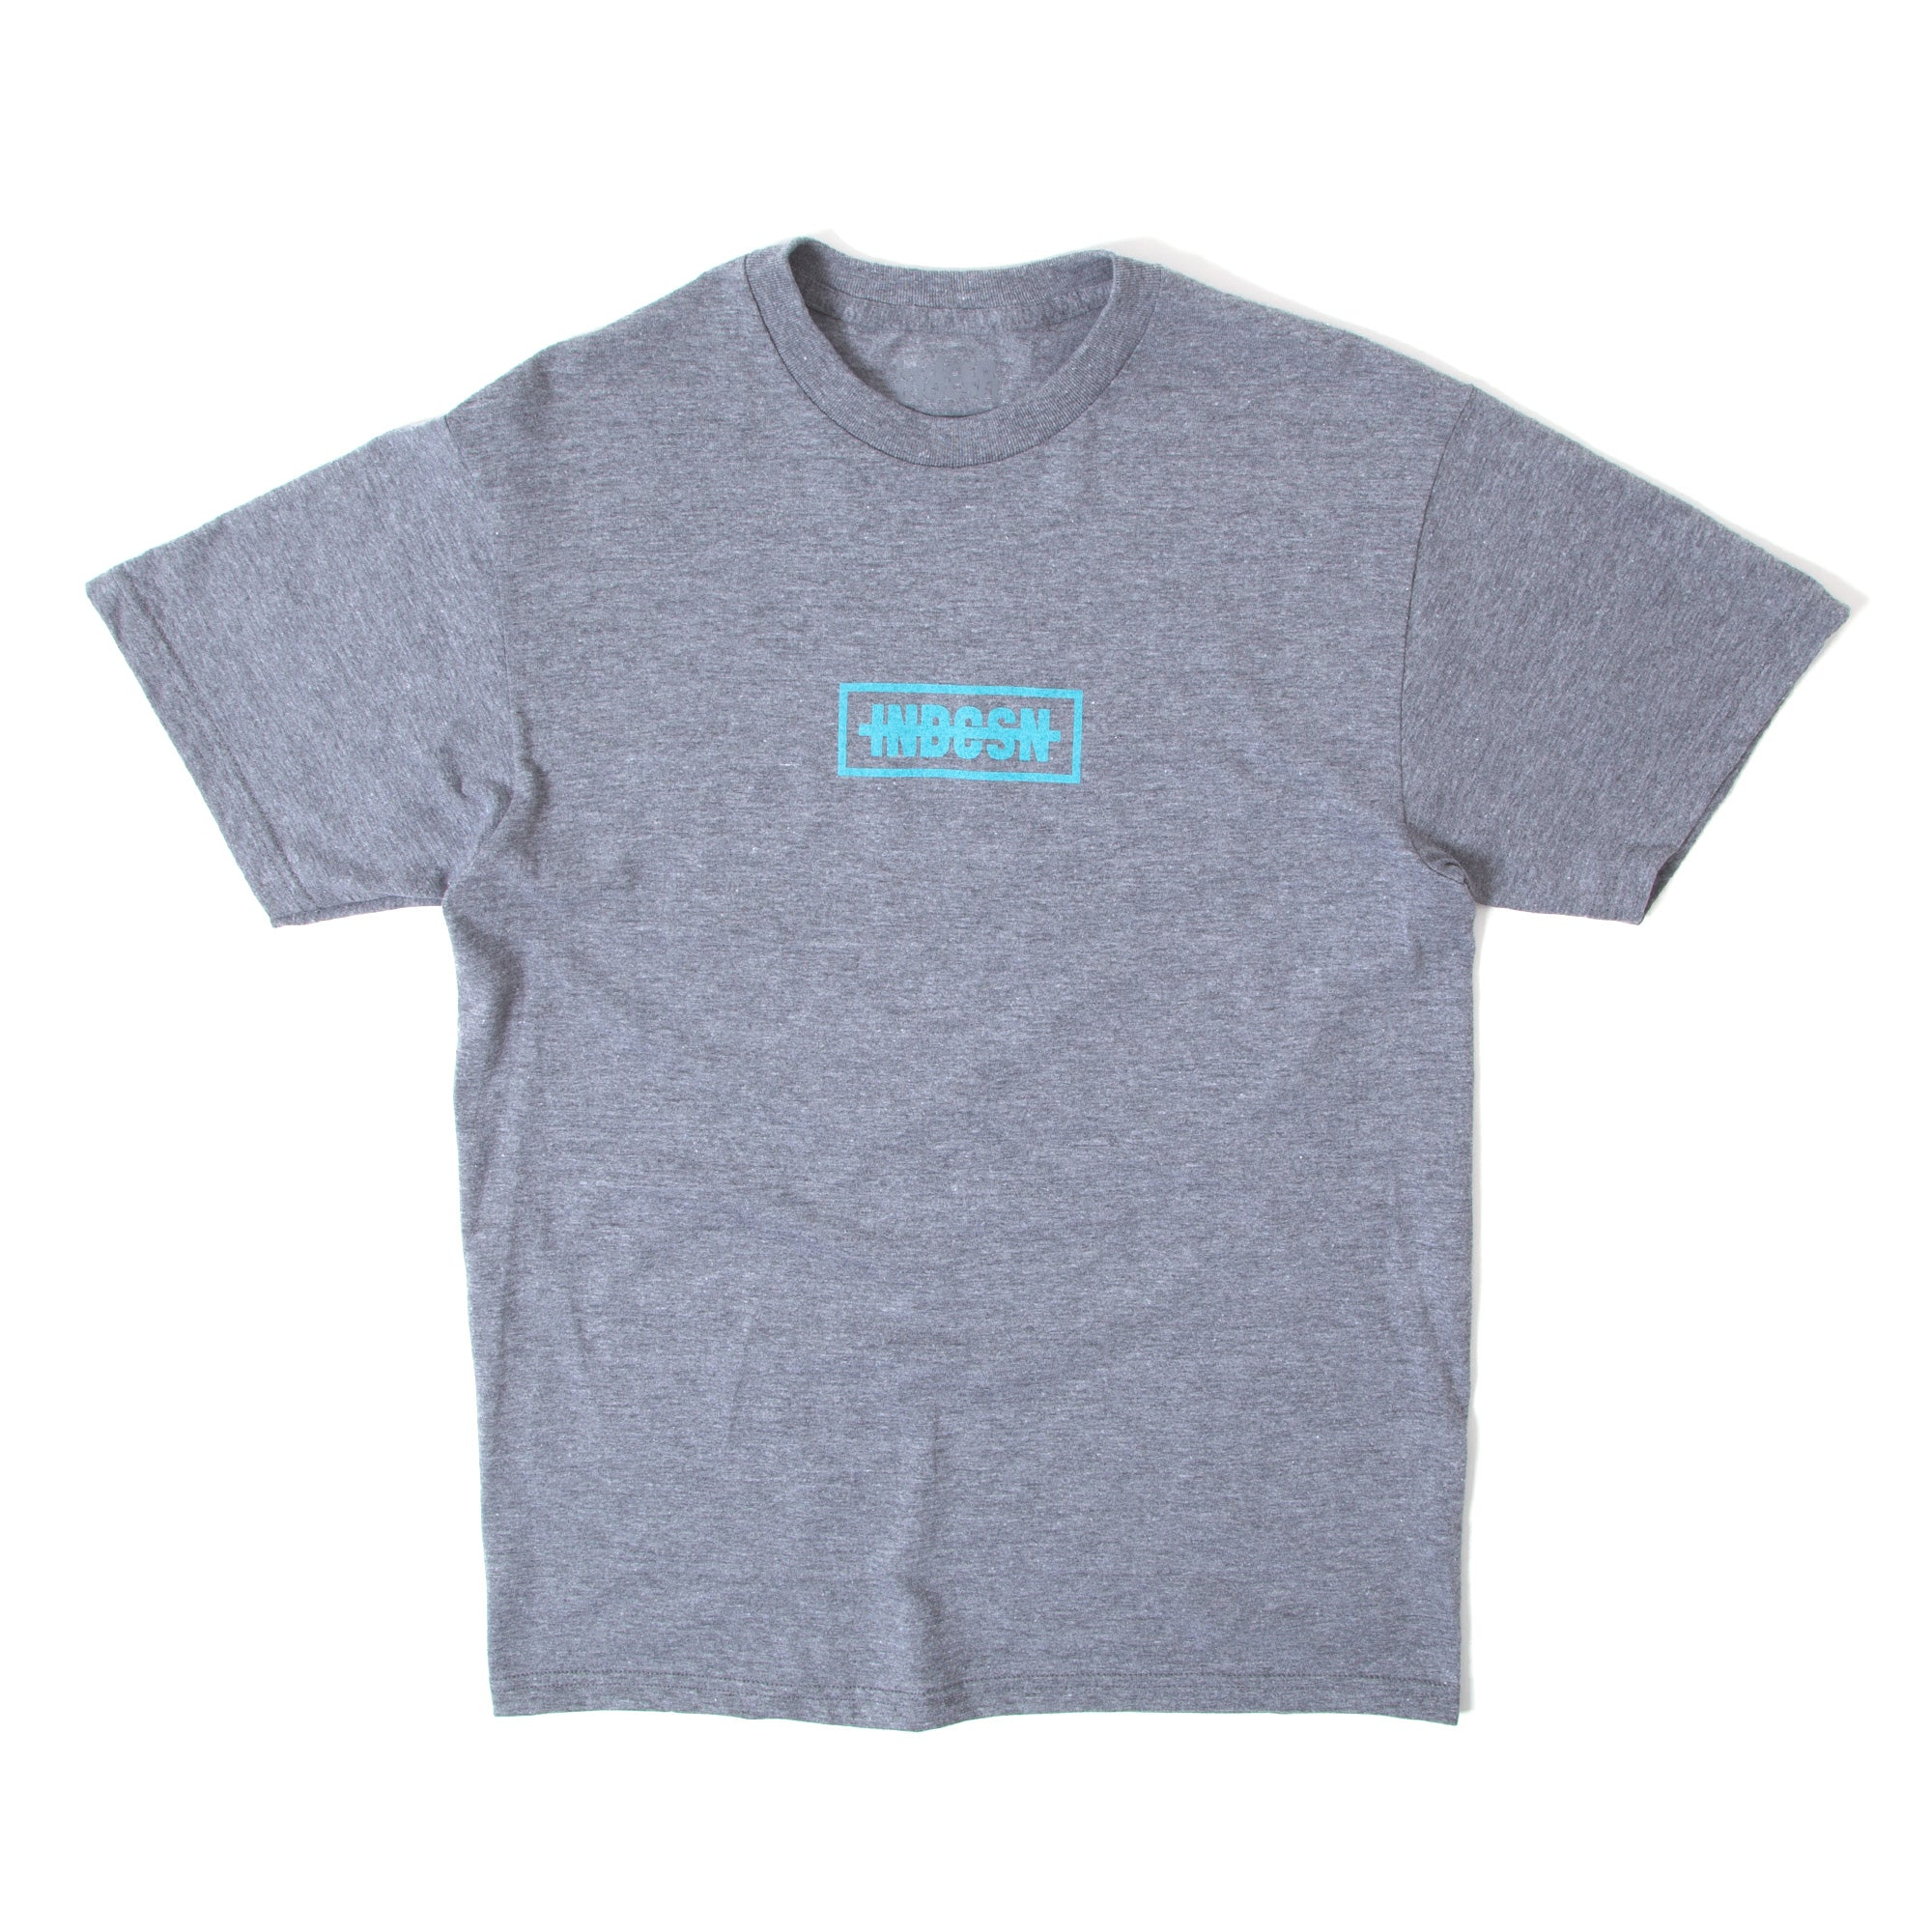 Strikethru T Shirt - Graphite Heather